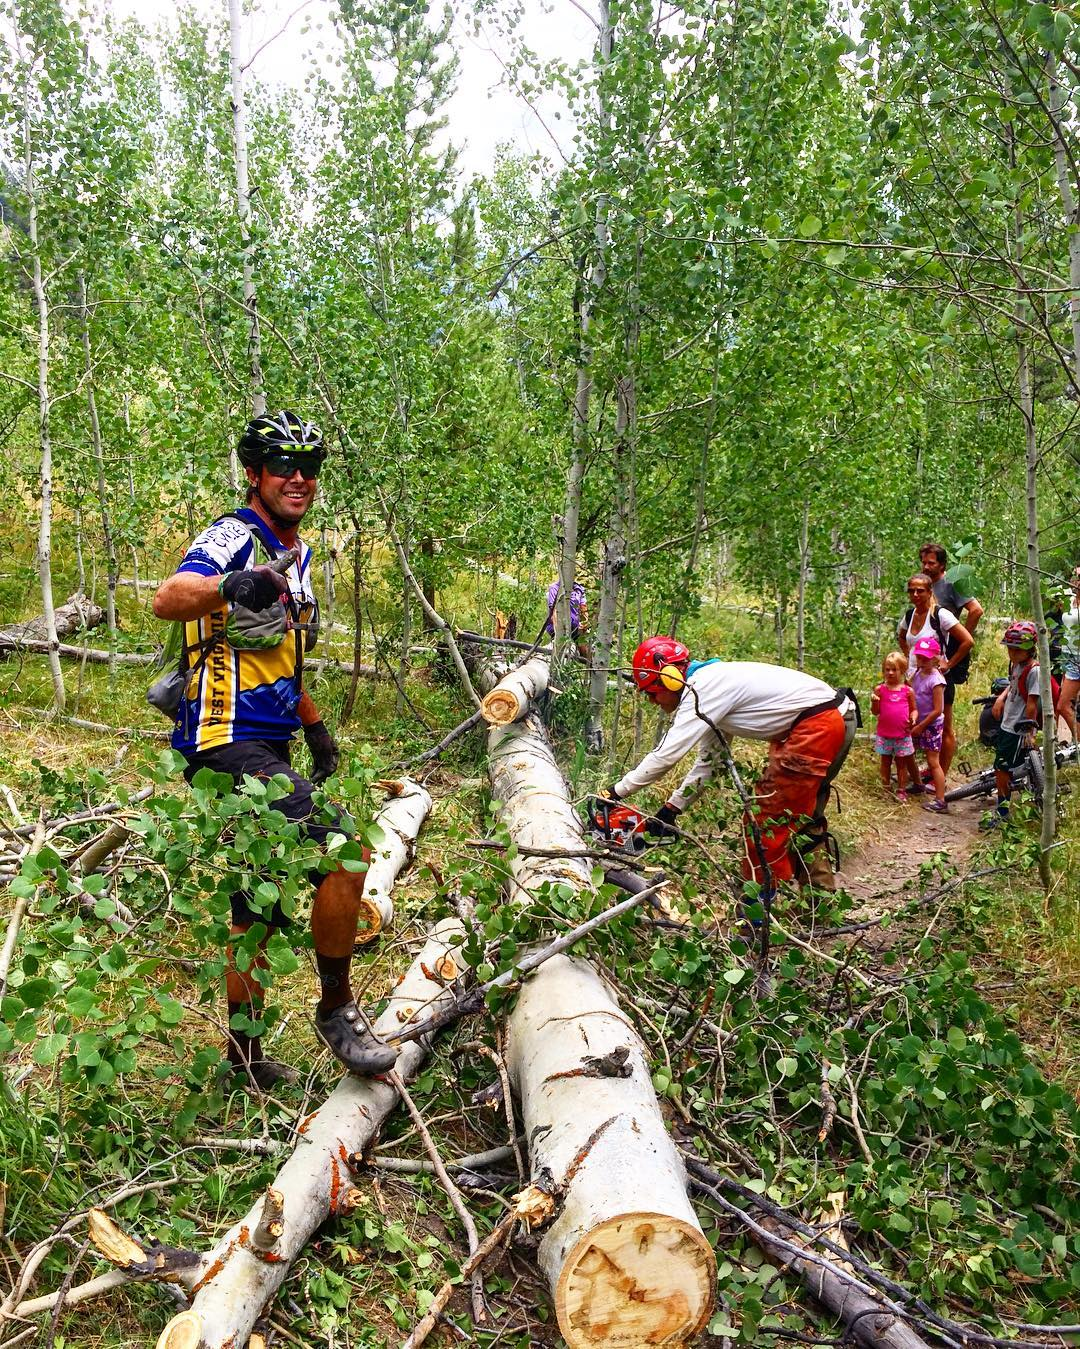 Last Friday ride in Ketchum before heading out to California for the week.  Thought we'd help remove a fallen tree.  #doyourpart thanks BCRD!